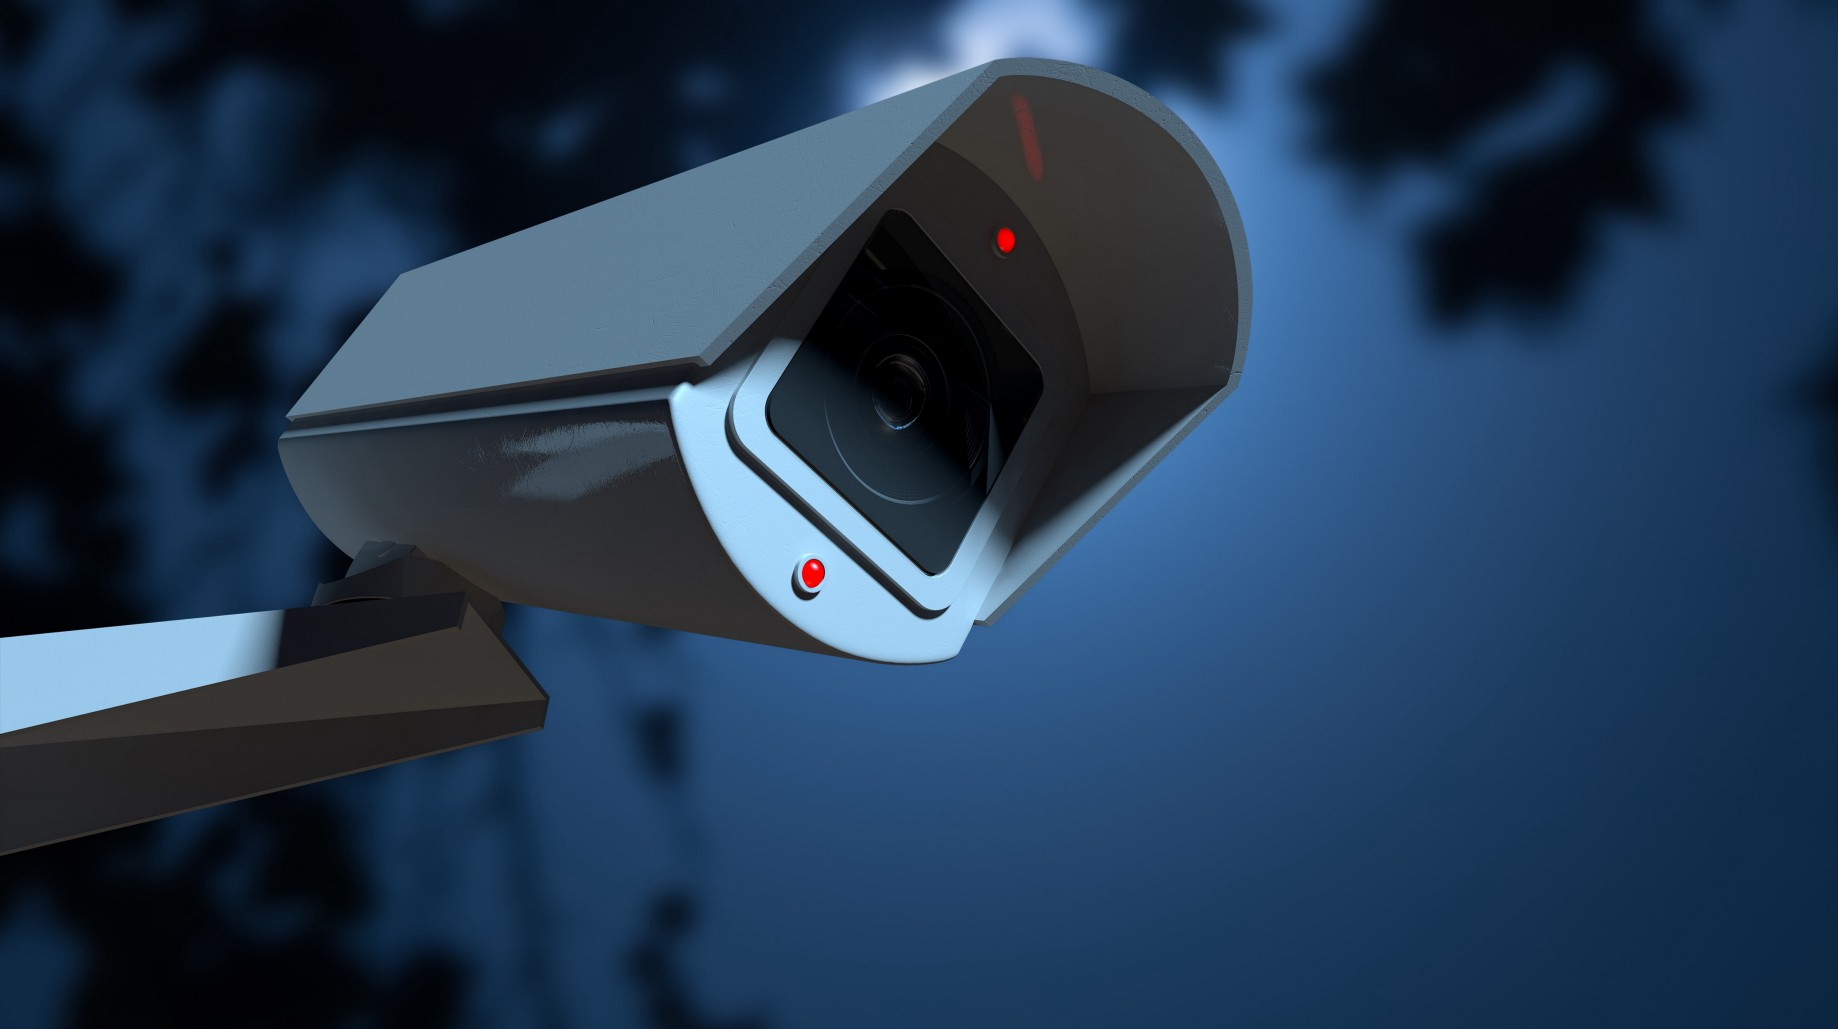 CCTV Cameras in the Philippines: Different Types of CCTV Cameras